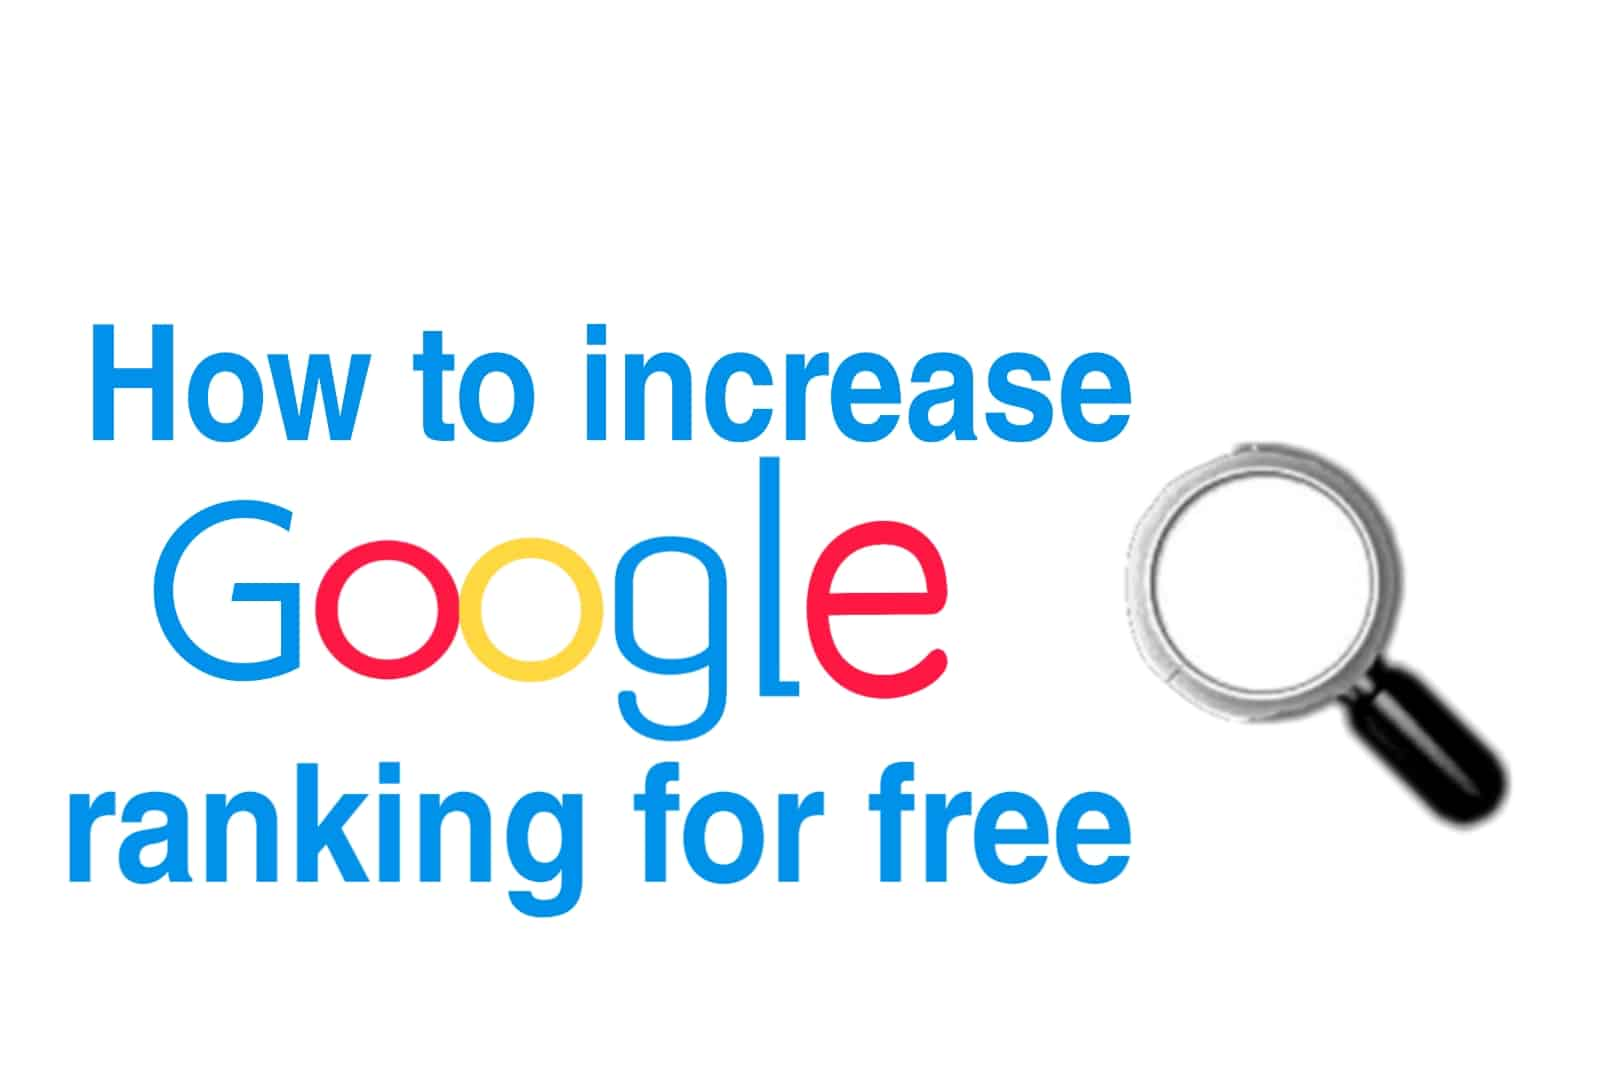 How to increase google rating for free - SEO Tips & Tips